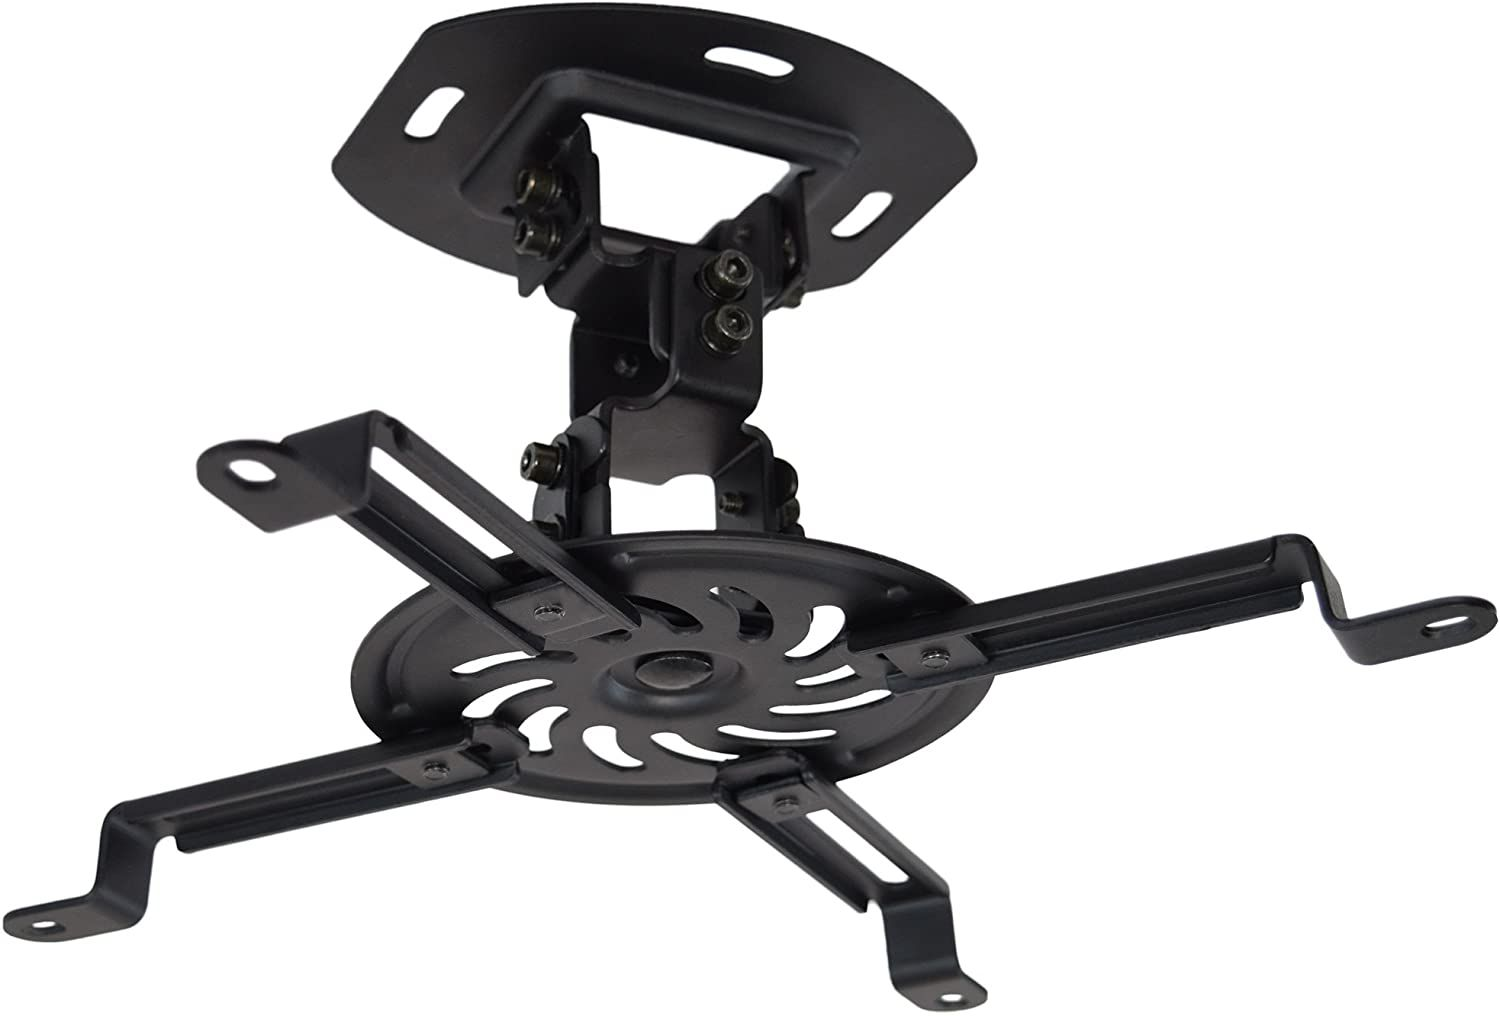 VIVO Universal Adjustable Black Ceiling Projector/Projection Mount Extending Arms